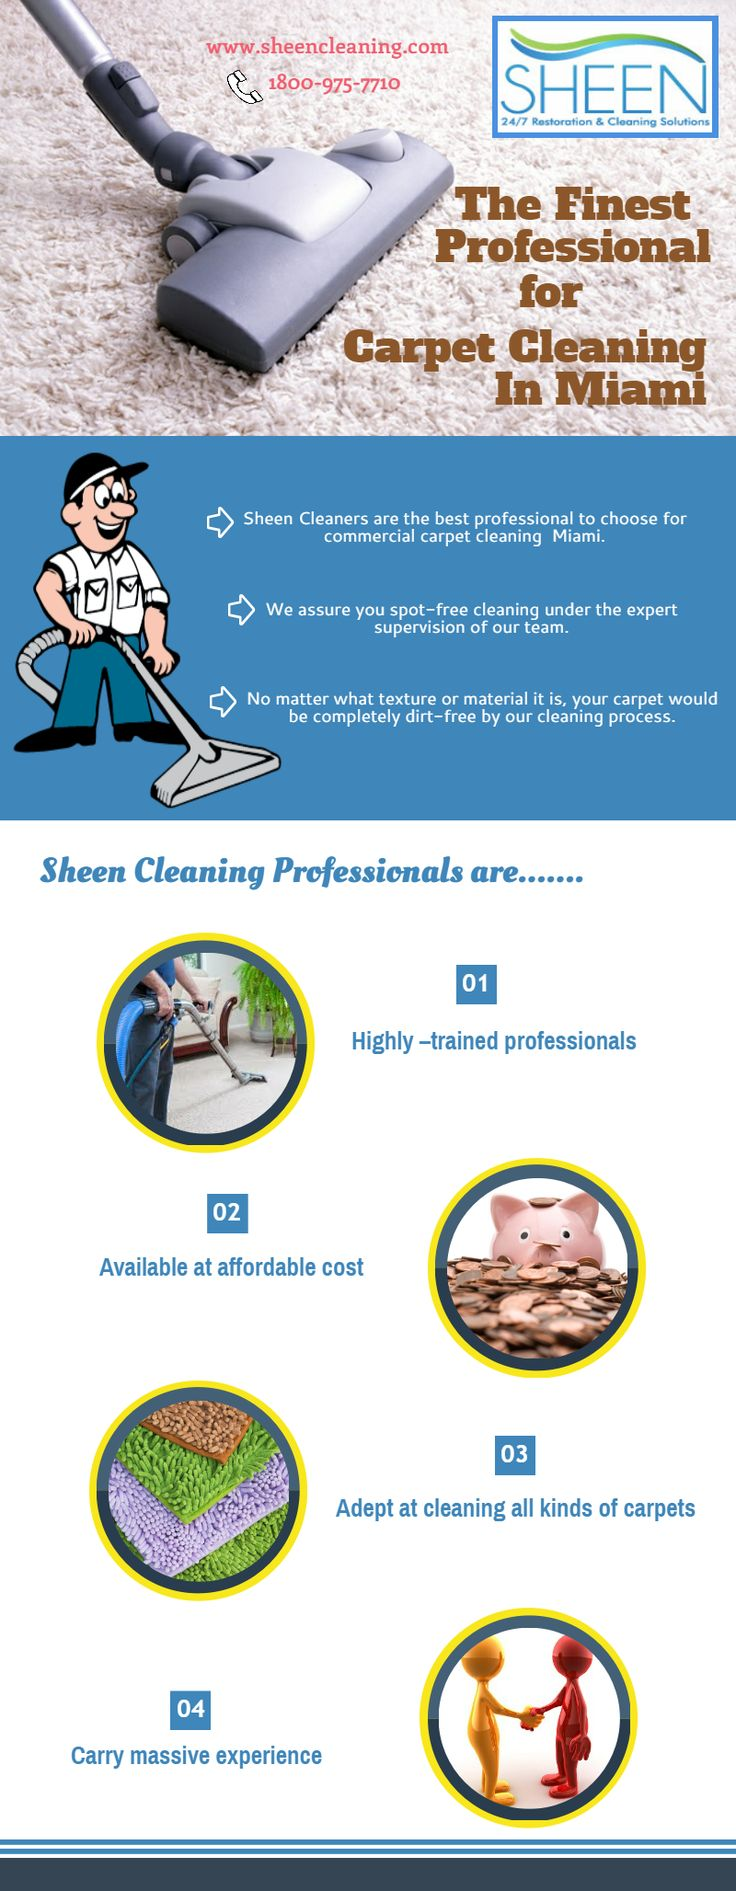 Sheen Cleaning offers commercial carpet cleaning in Miami to help offices keep their carpets clean, free of dust, dirt, grime and allergens. With our expert technicians and high-end powerful machines, we can make short work of any stain. We offer complete commercial carpet cleaning solution with fastest response time. And, we only use safe and non-toxic cleaning solution to ensure a very safe carpet cleaning solution.